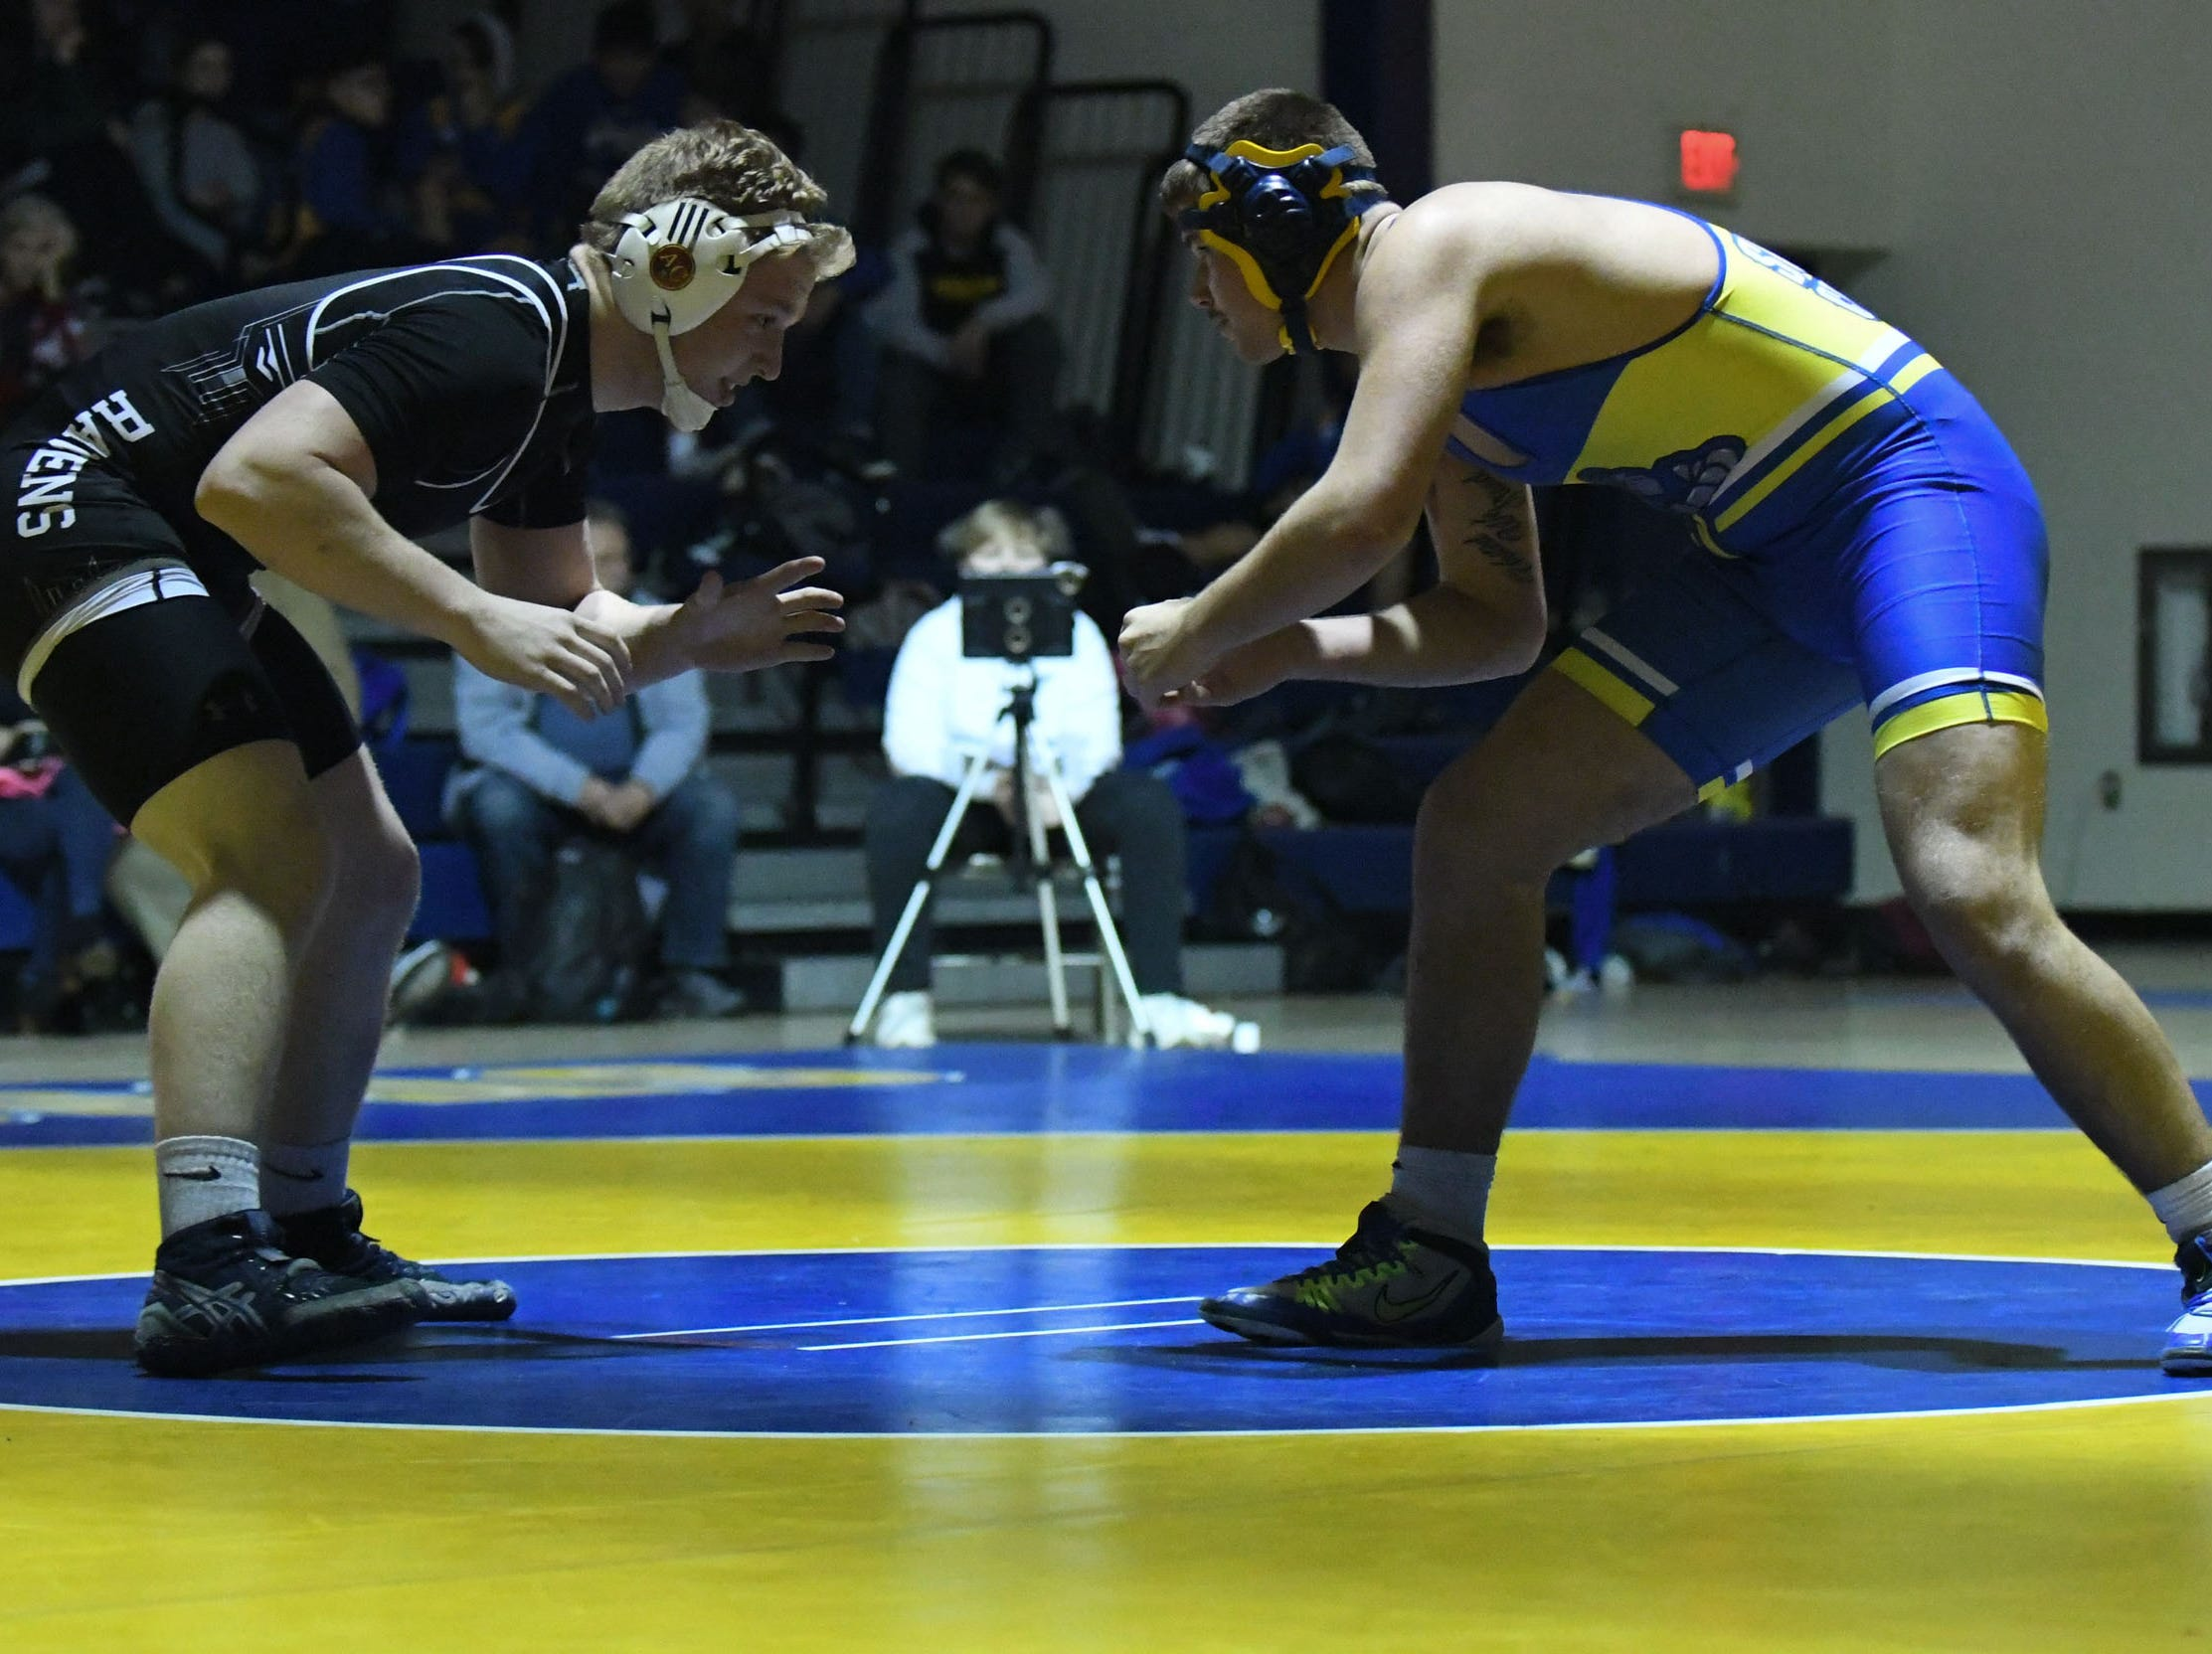 Sussex Central's Hiram Lasher battled Sussex Tech's Andrew Hawkins during the match up at 220lbs on Wednesday, Feb. 6, 2019.